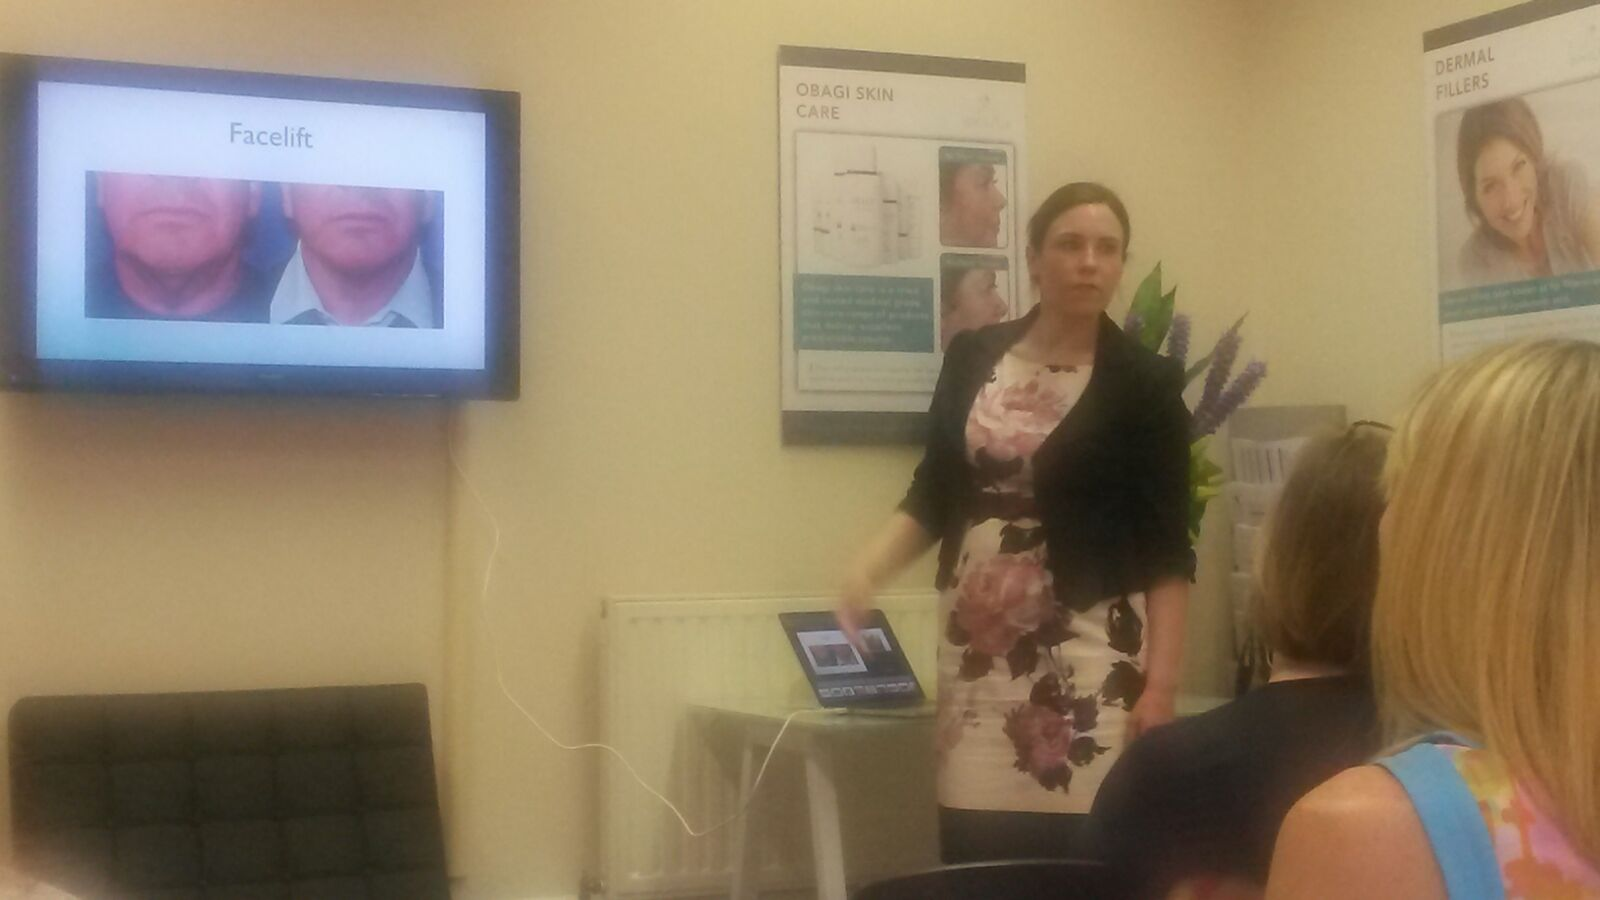 Nora Nugent discussing facelifts at Purity Bridge